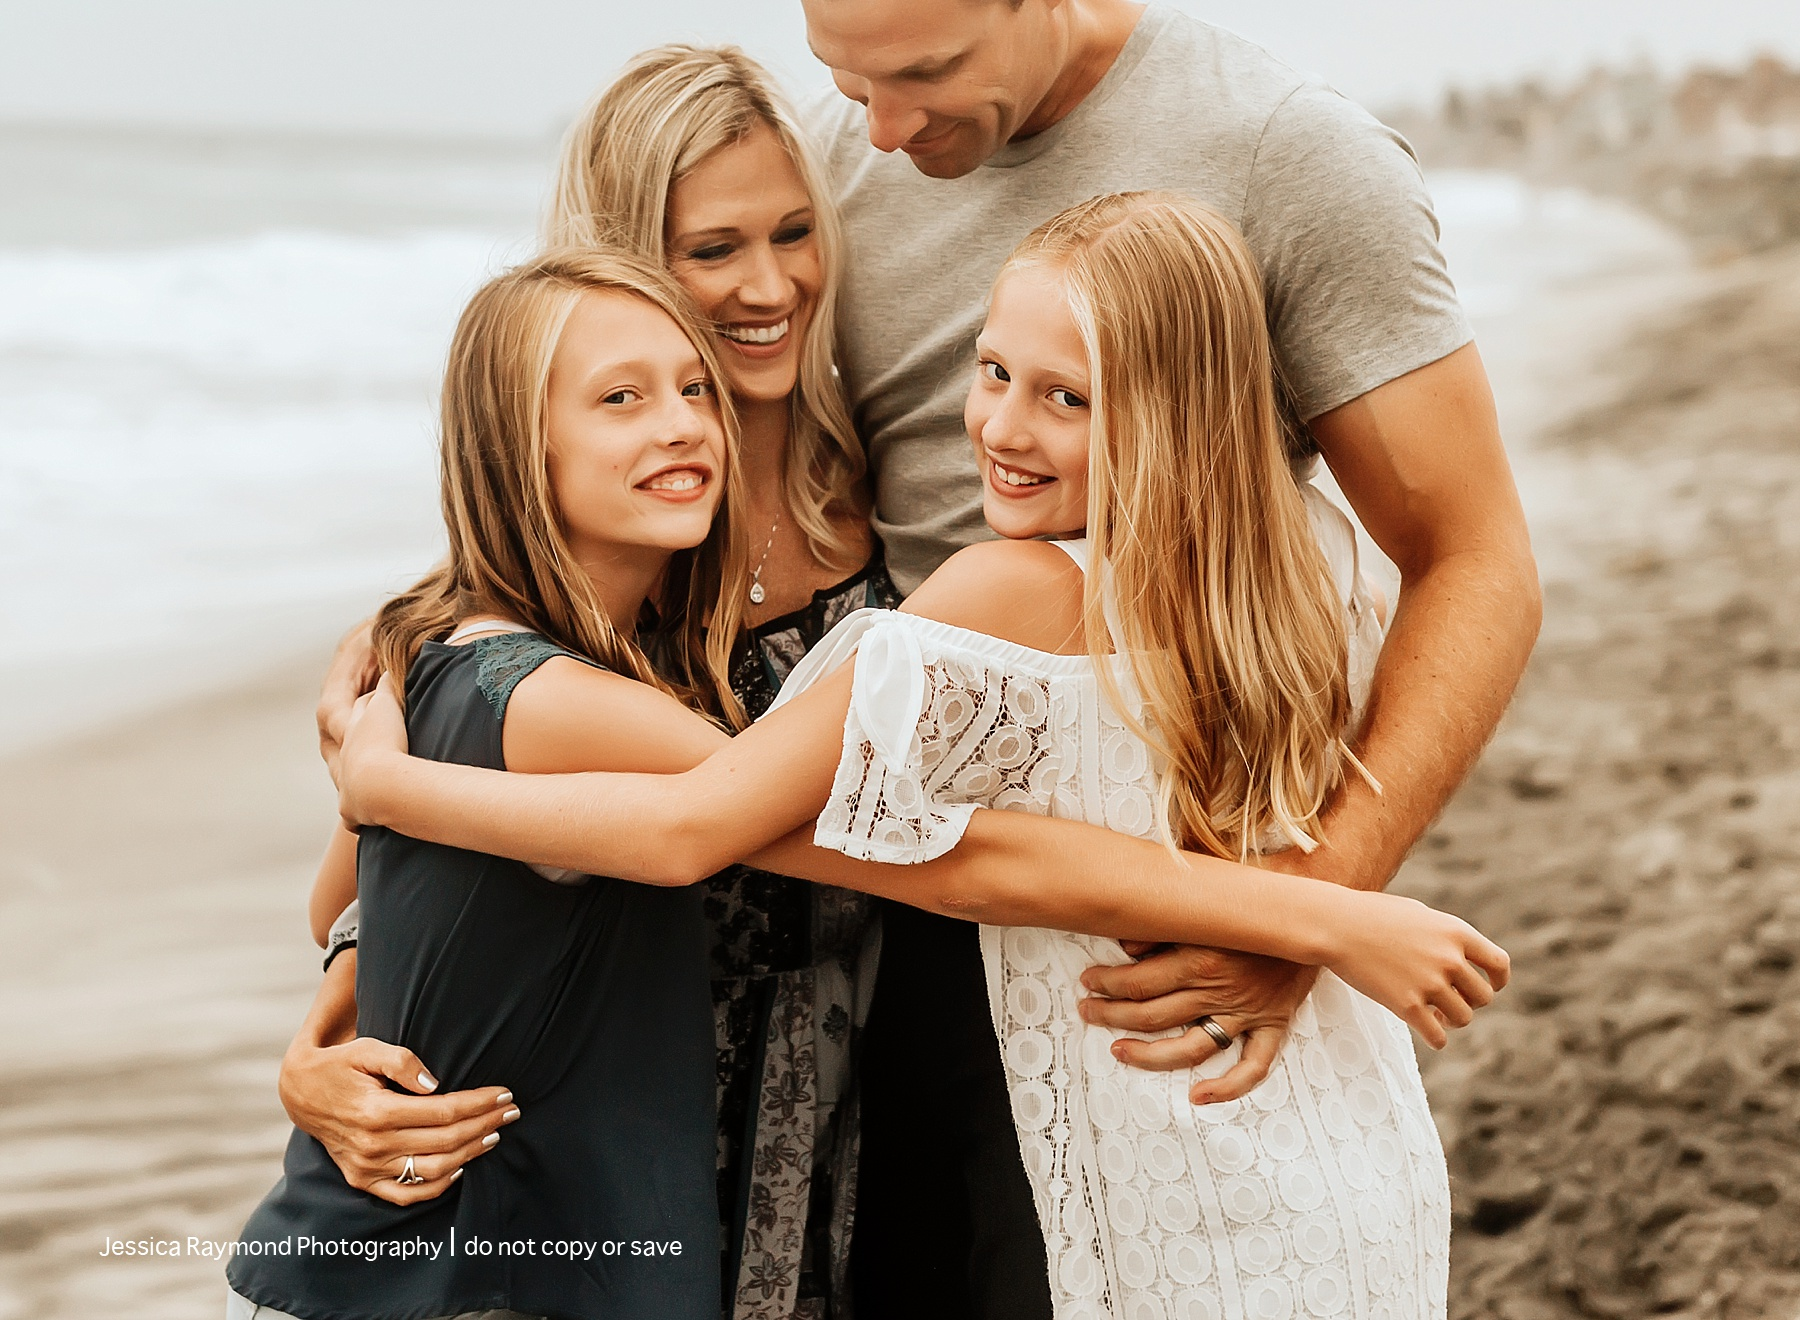 family beach picture ideas family of 4 hugging